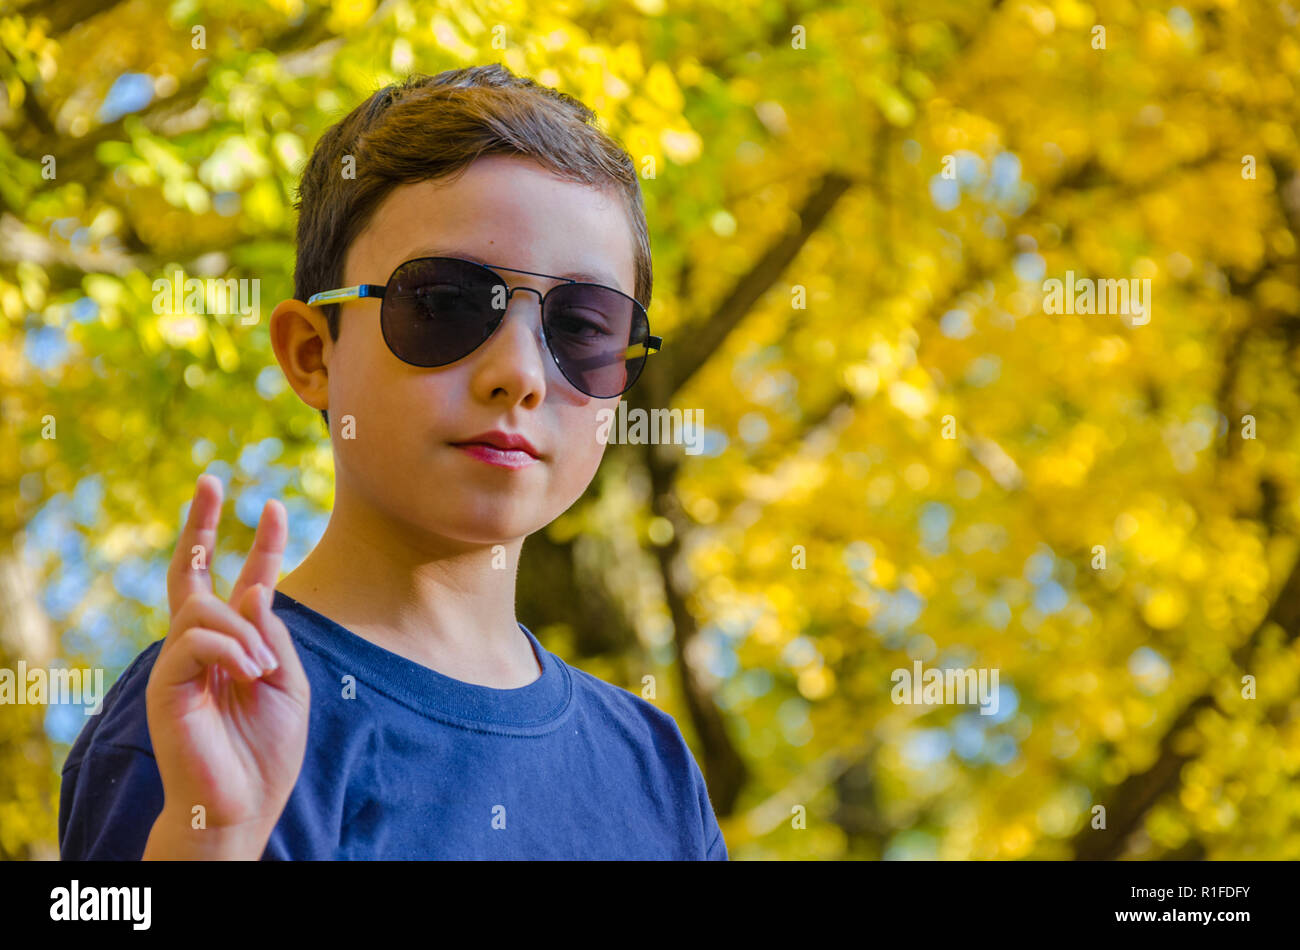 A portrait of a young boy against autumn leaves. Stock Photo